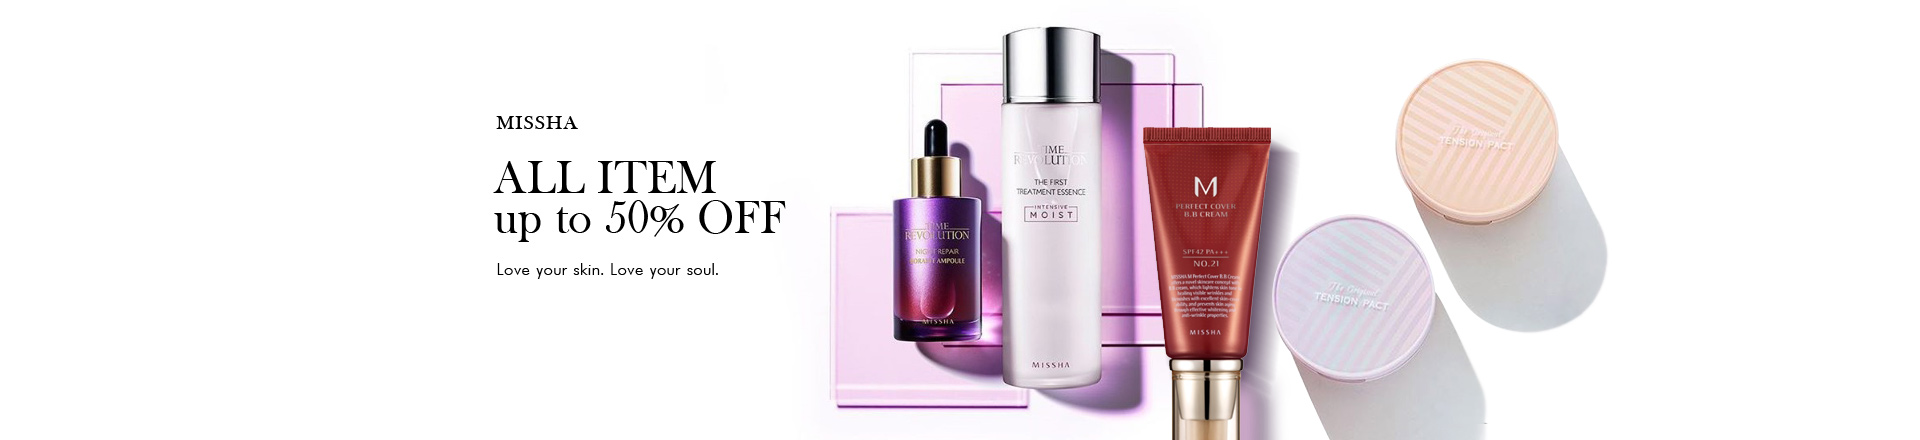 Missha up to 50% OFF